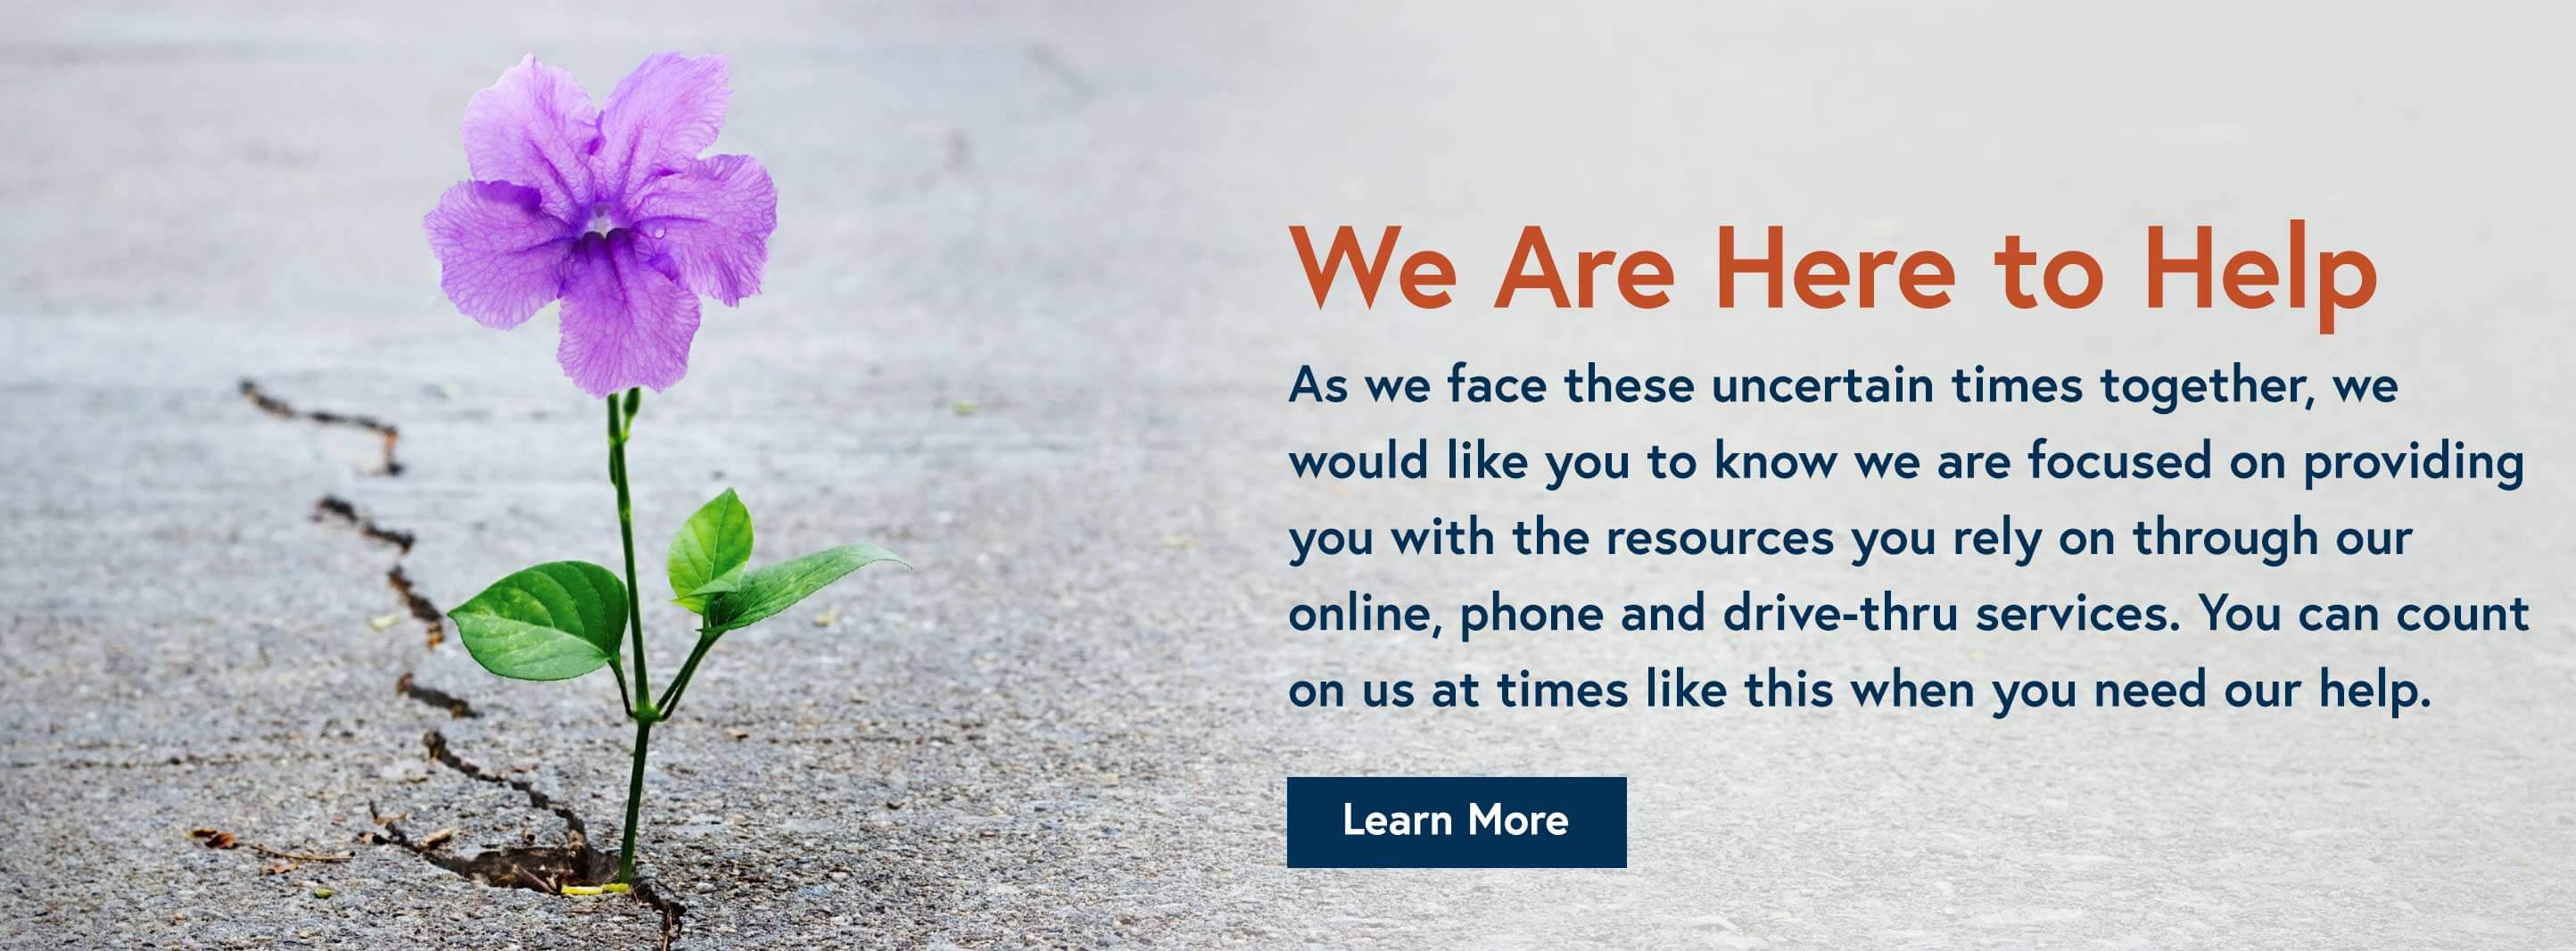 You can count on us at times like this when you need our help. Learn More